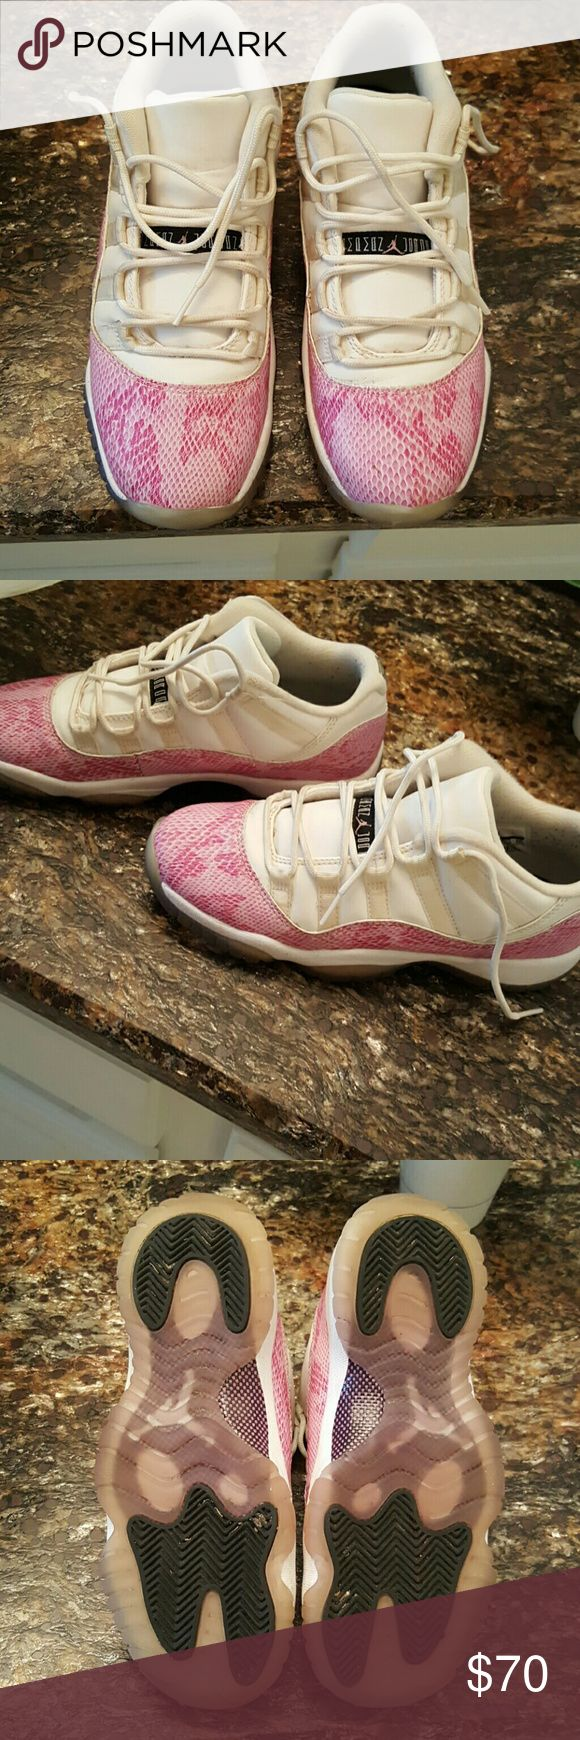 Youth Nike basketball shoes Authentic pink snakeskin Jordan 11s. Great used condition. Rare sneaker!! Nike  Shoes Sneakers